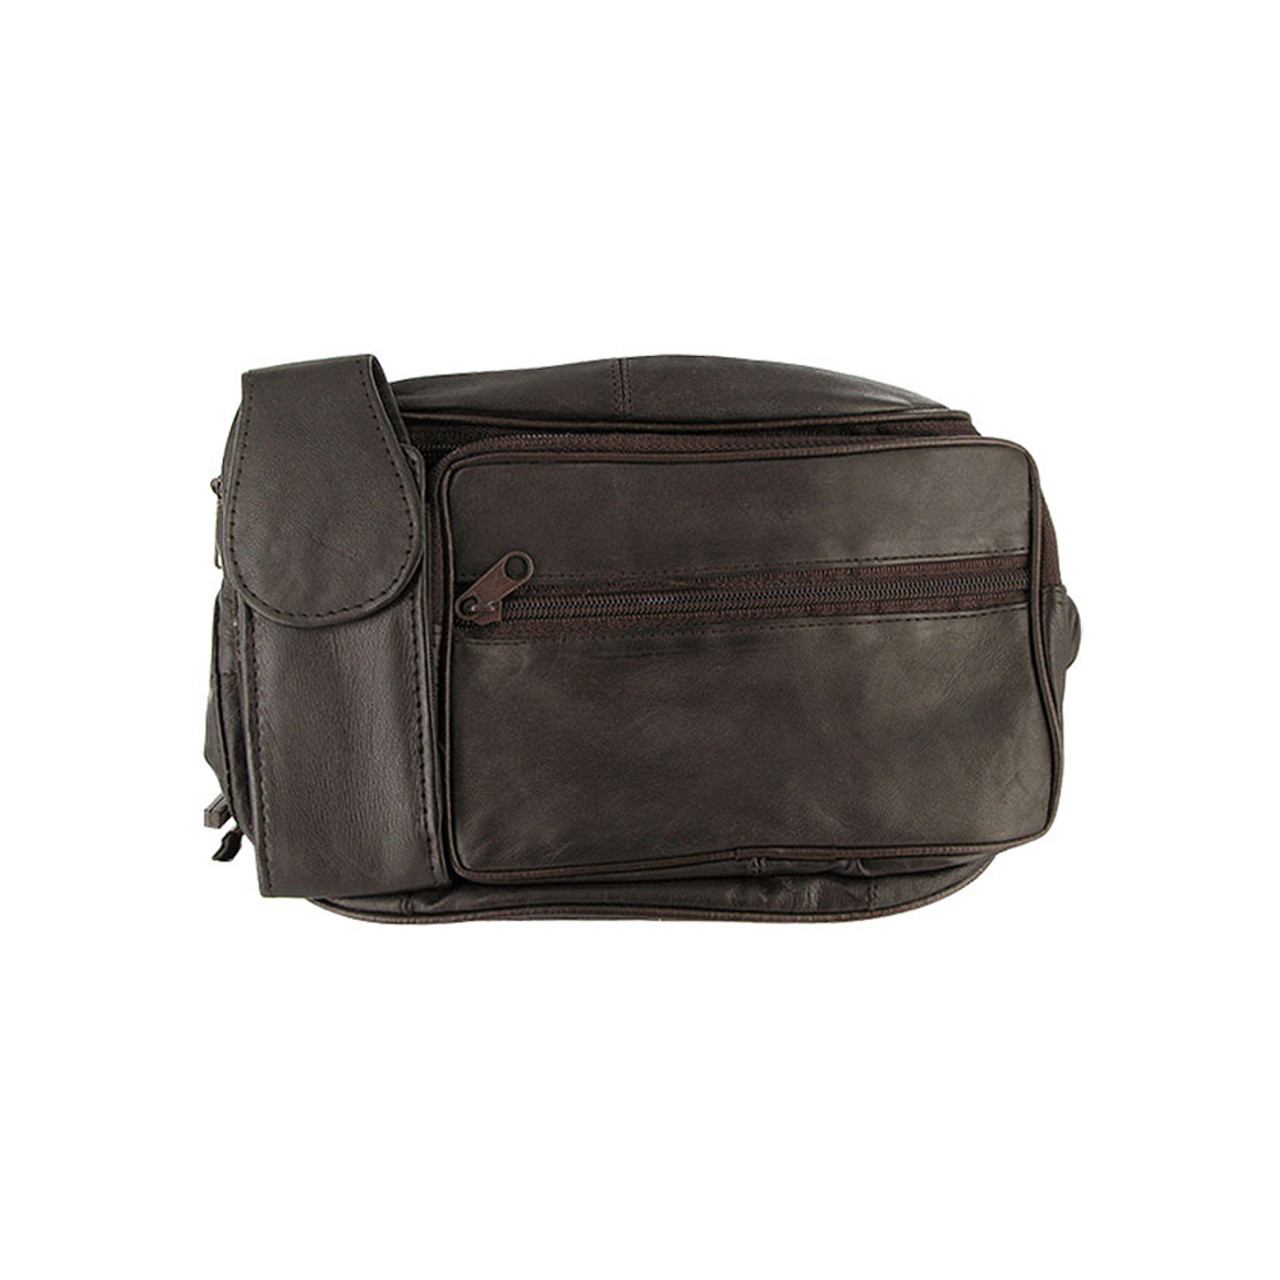 Lambskin Leather Fanny Pack with Cell Phone Pouch